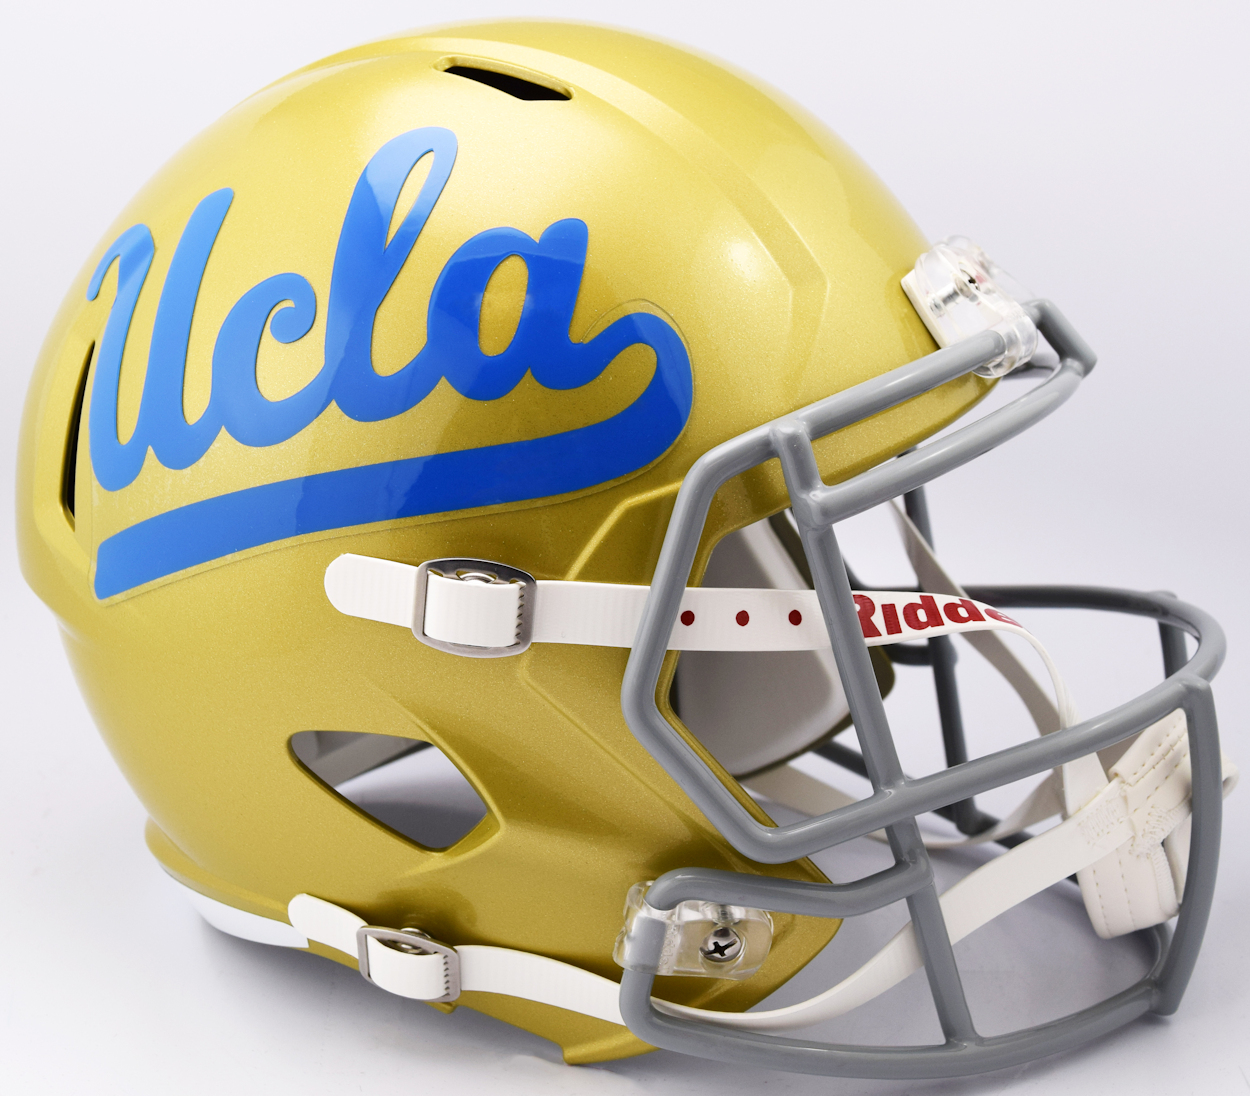 UCLA Bruins Speed Replica Football Helmet <B>NEW 2017</B>